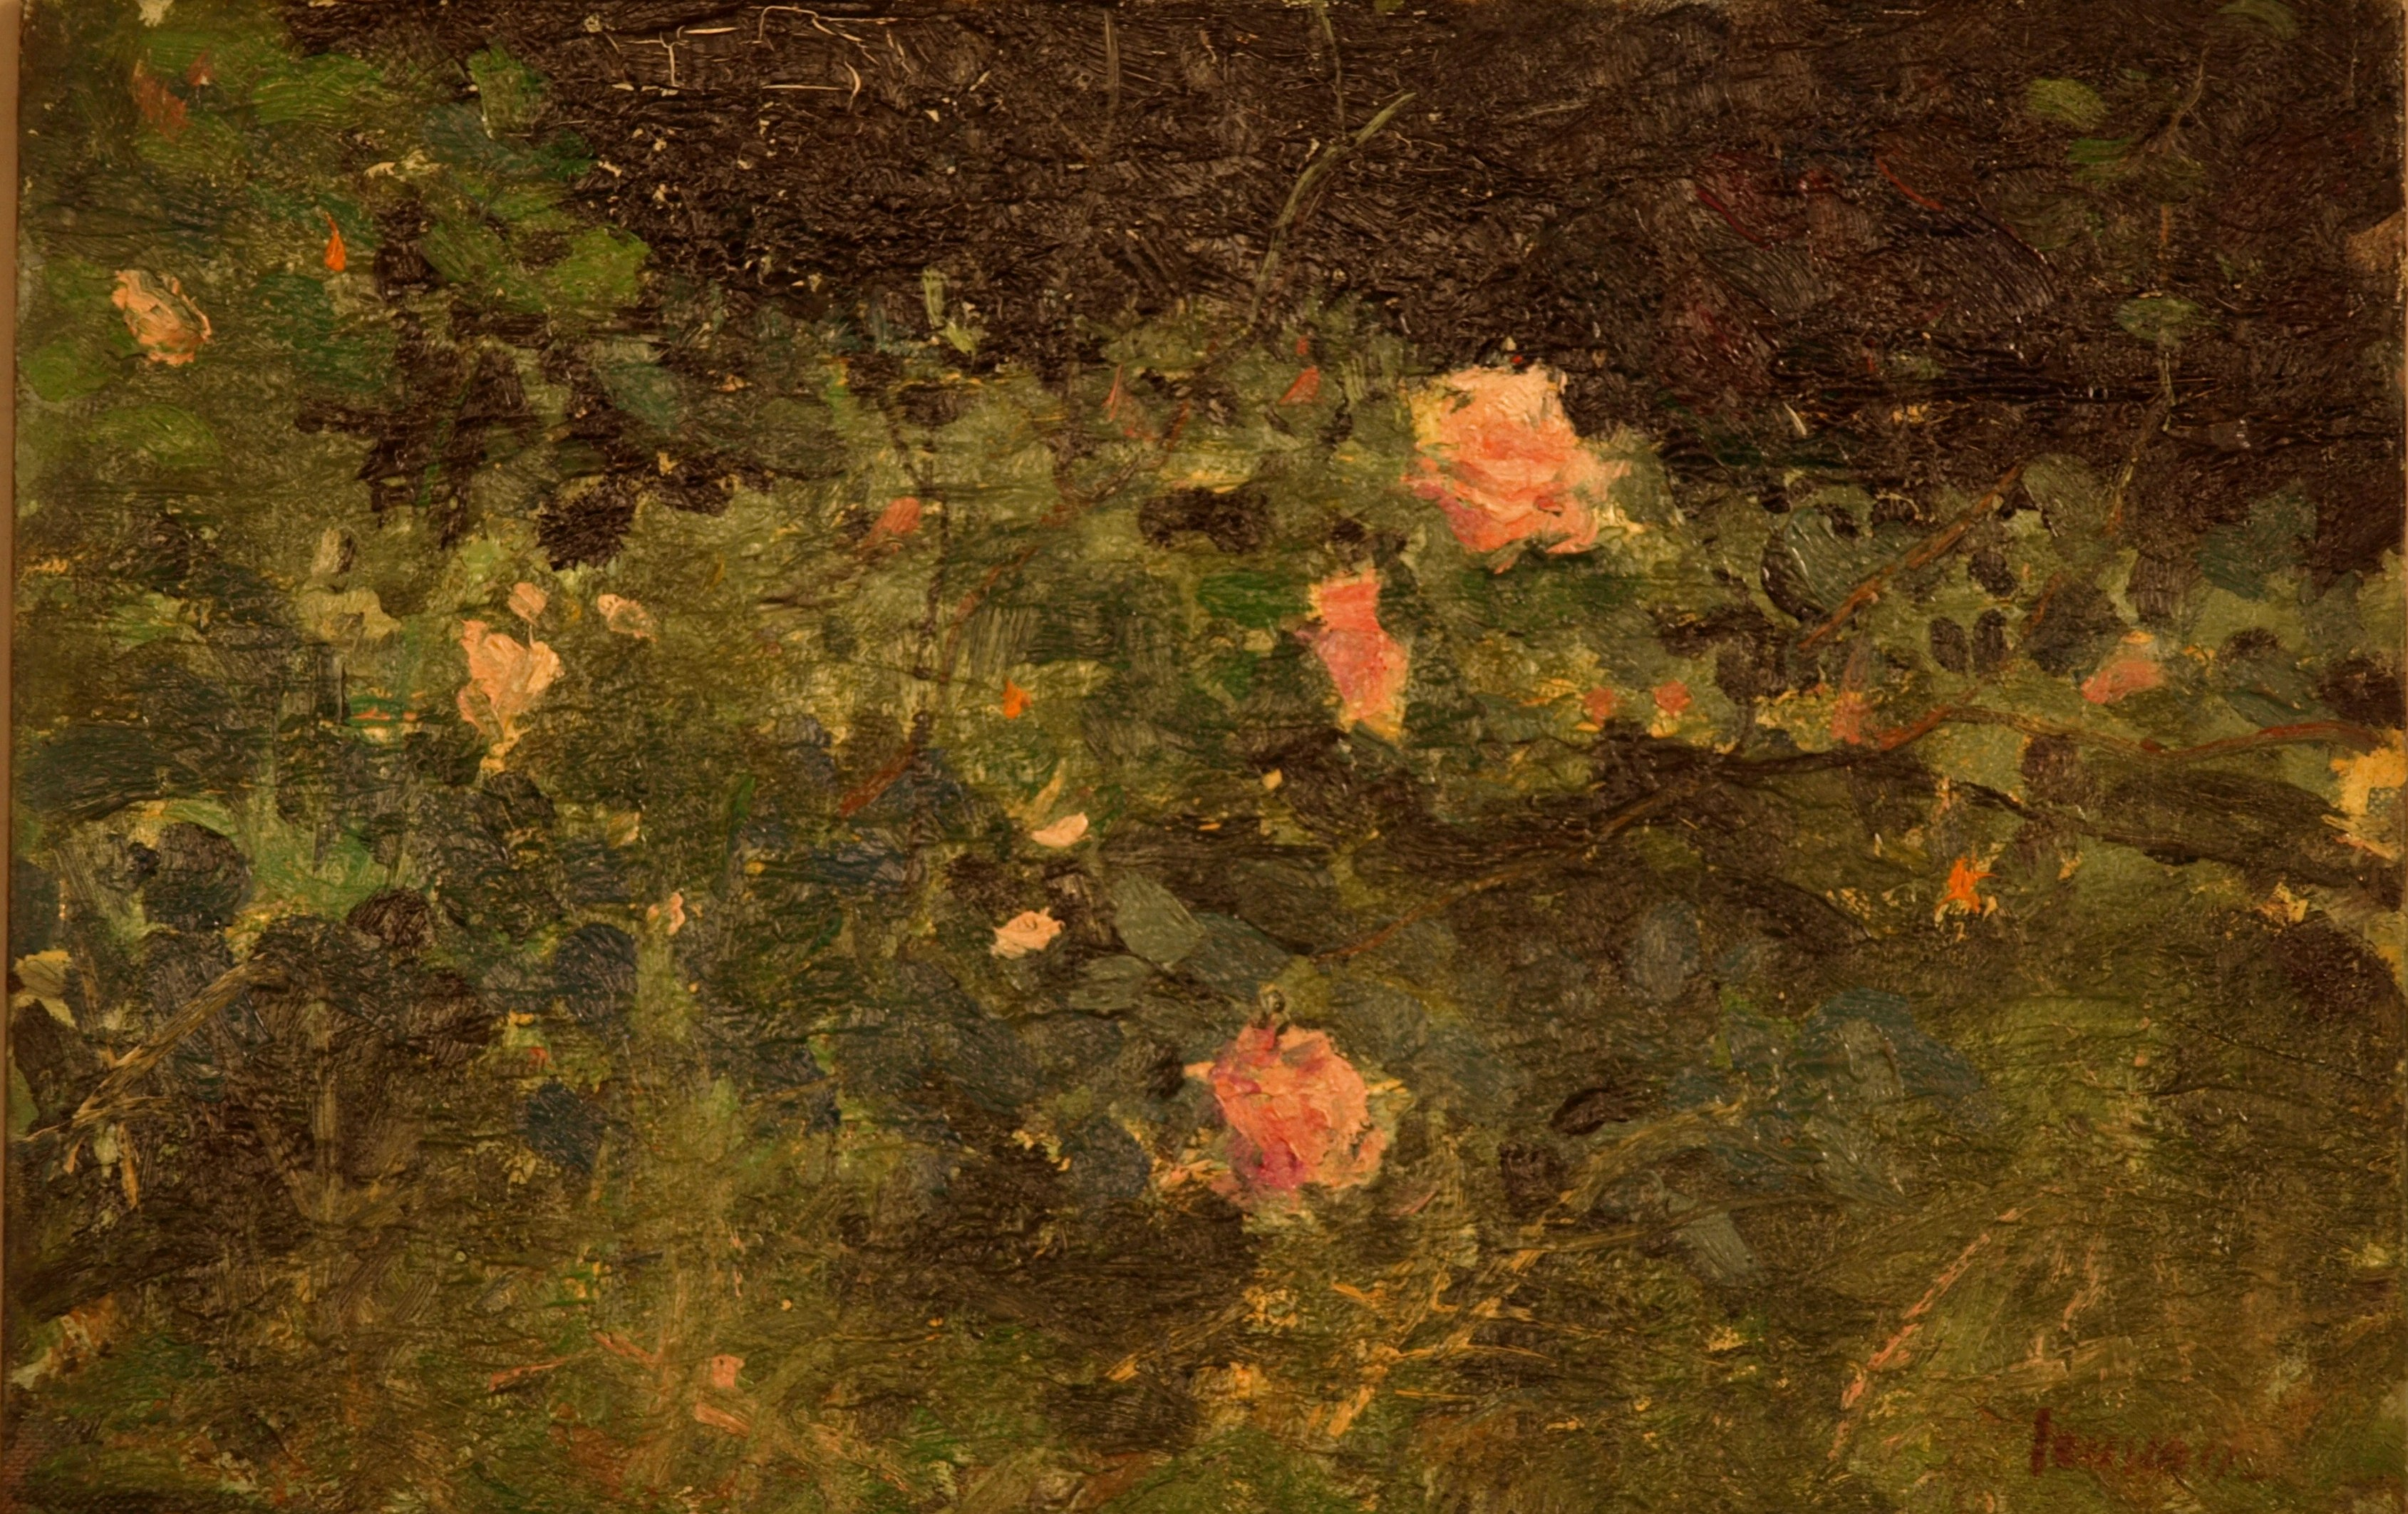 Wild Roses, Oil on Board, 8 x 12 Inches, by Bernard Lennon, $1000